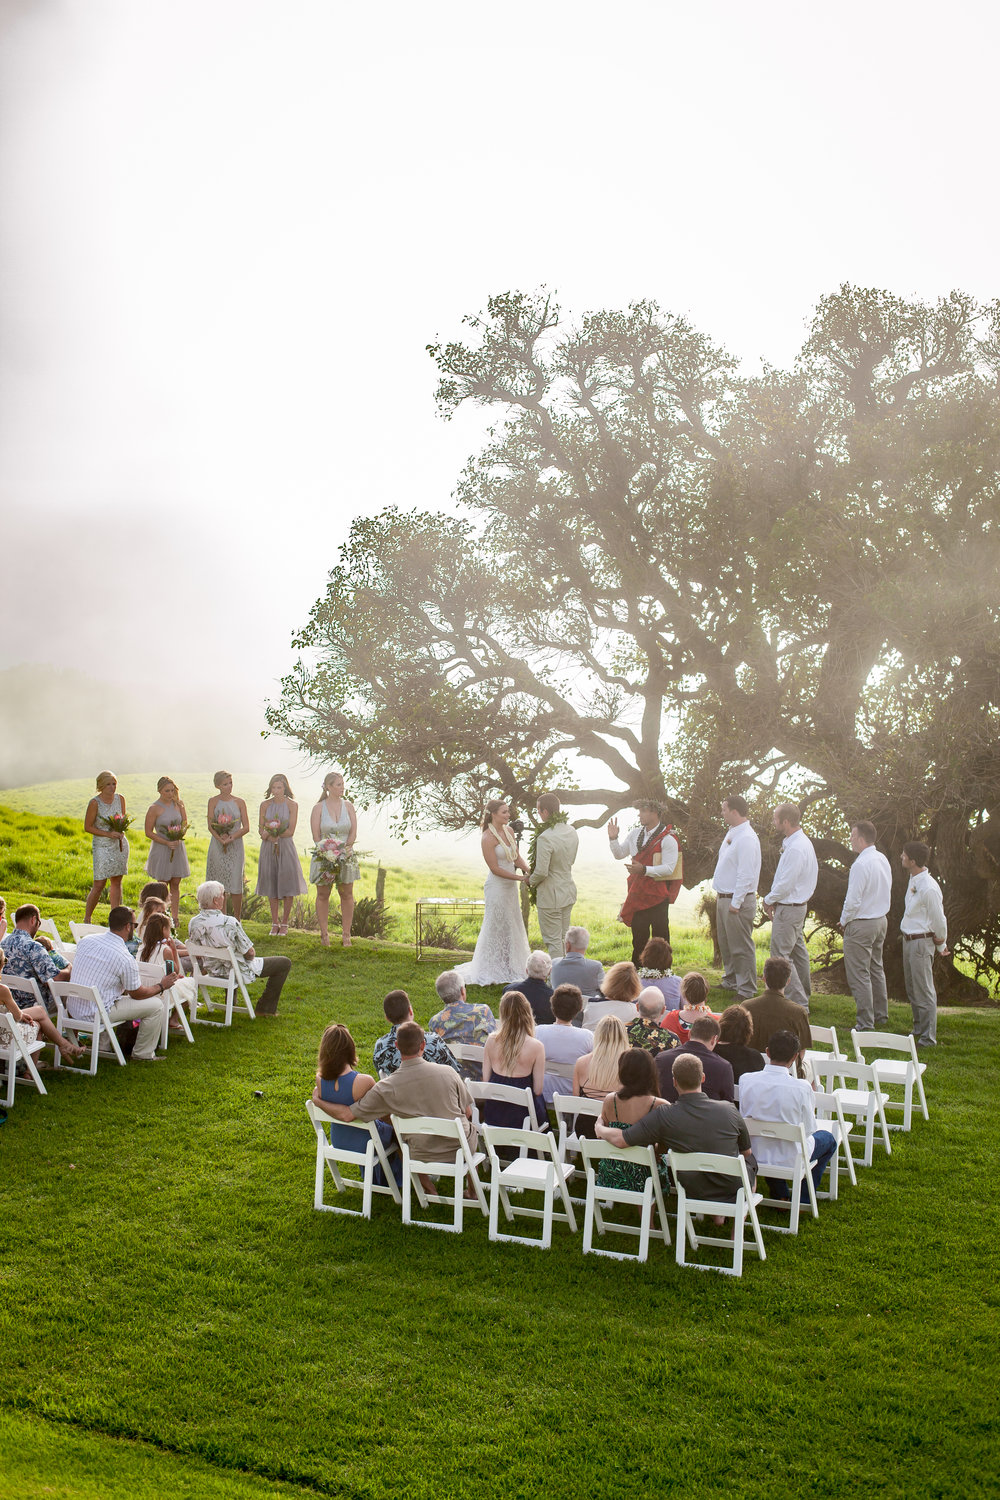 big island hawaii kahua ranch wedding © kelilina photography 20170106164530.jpg